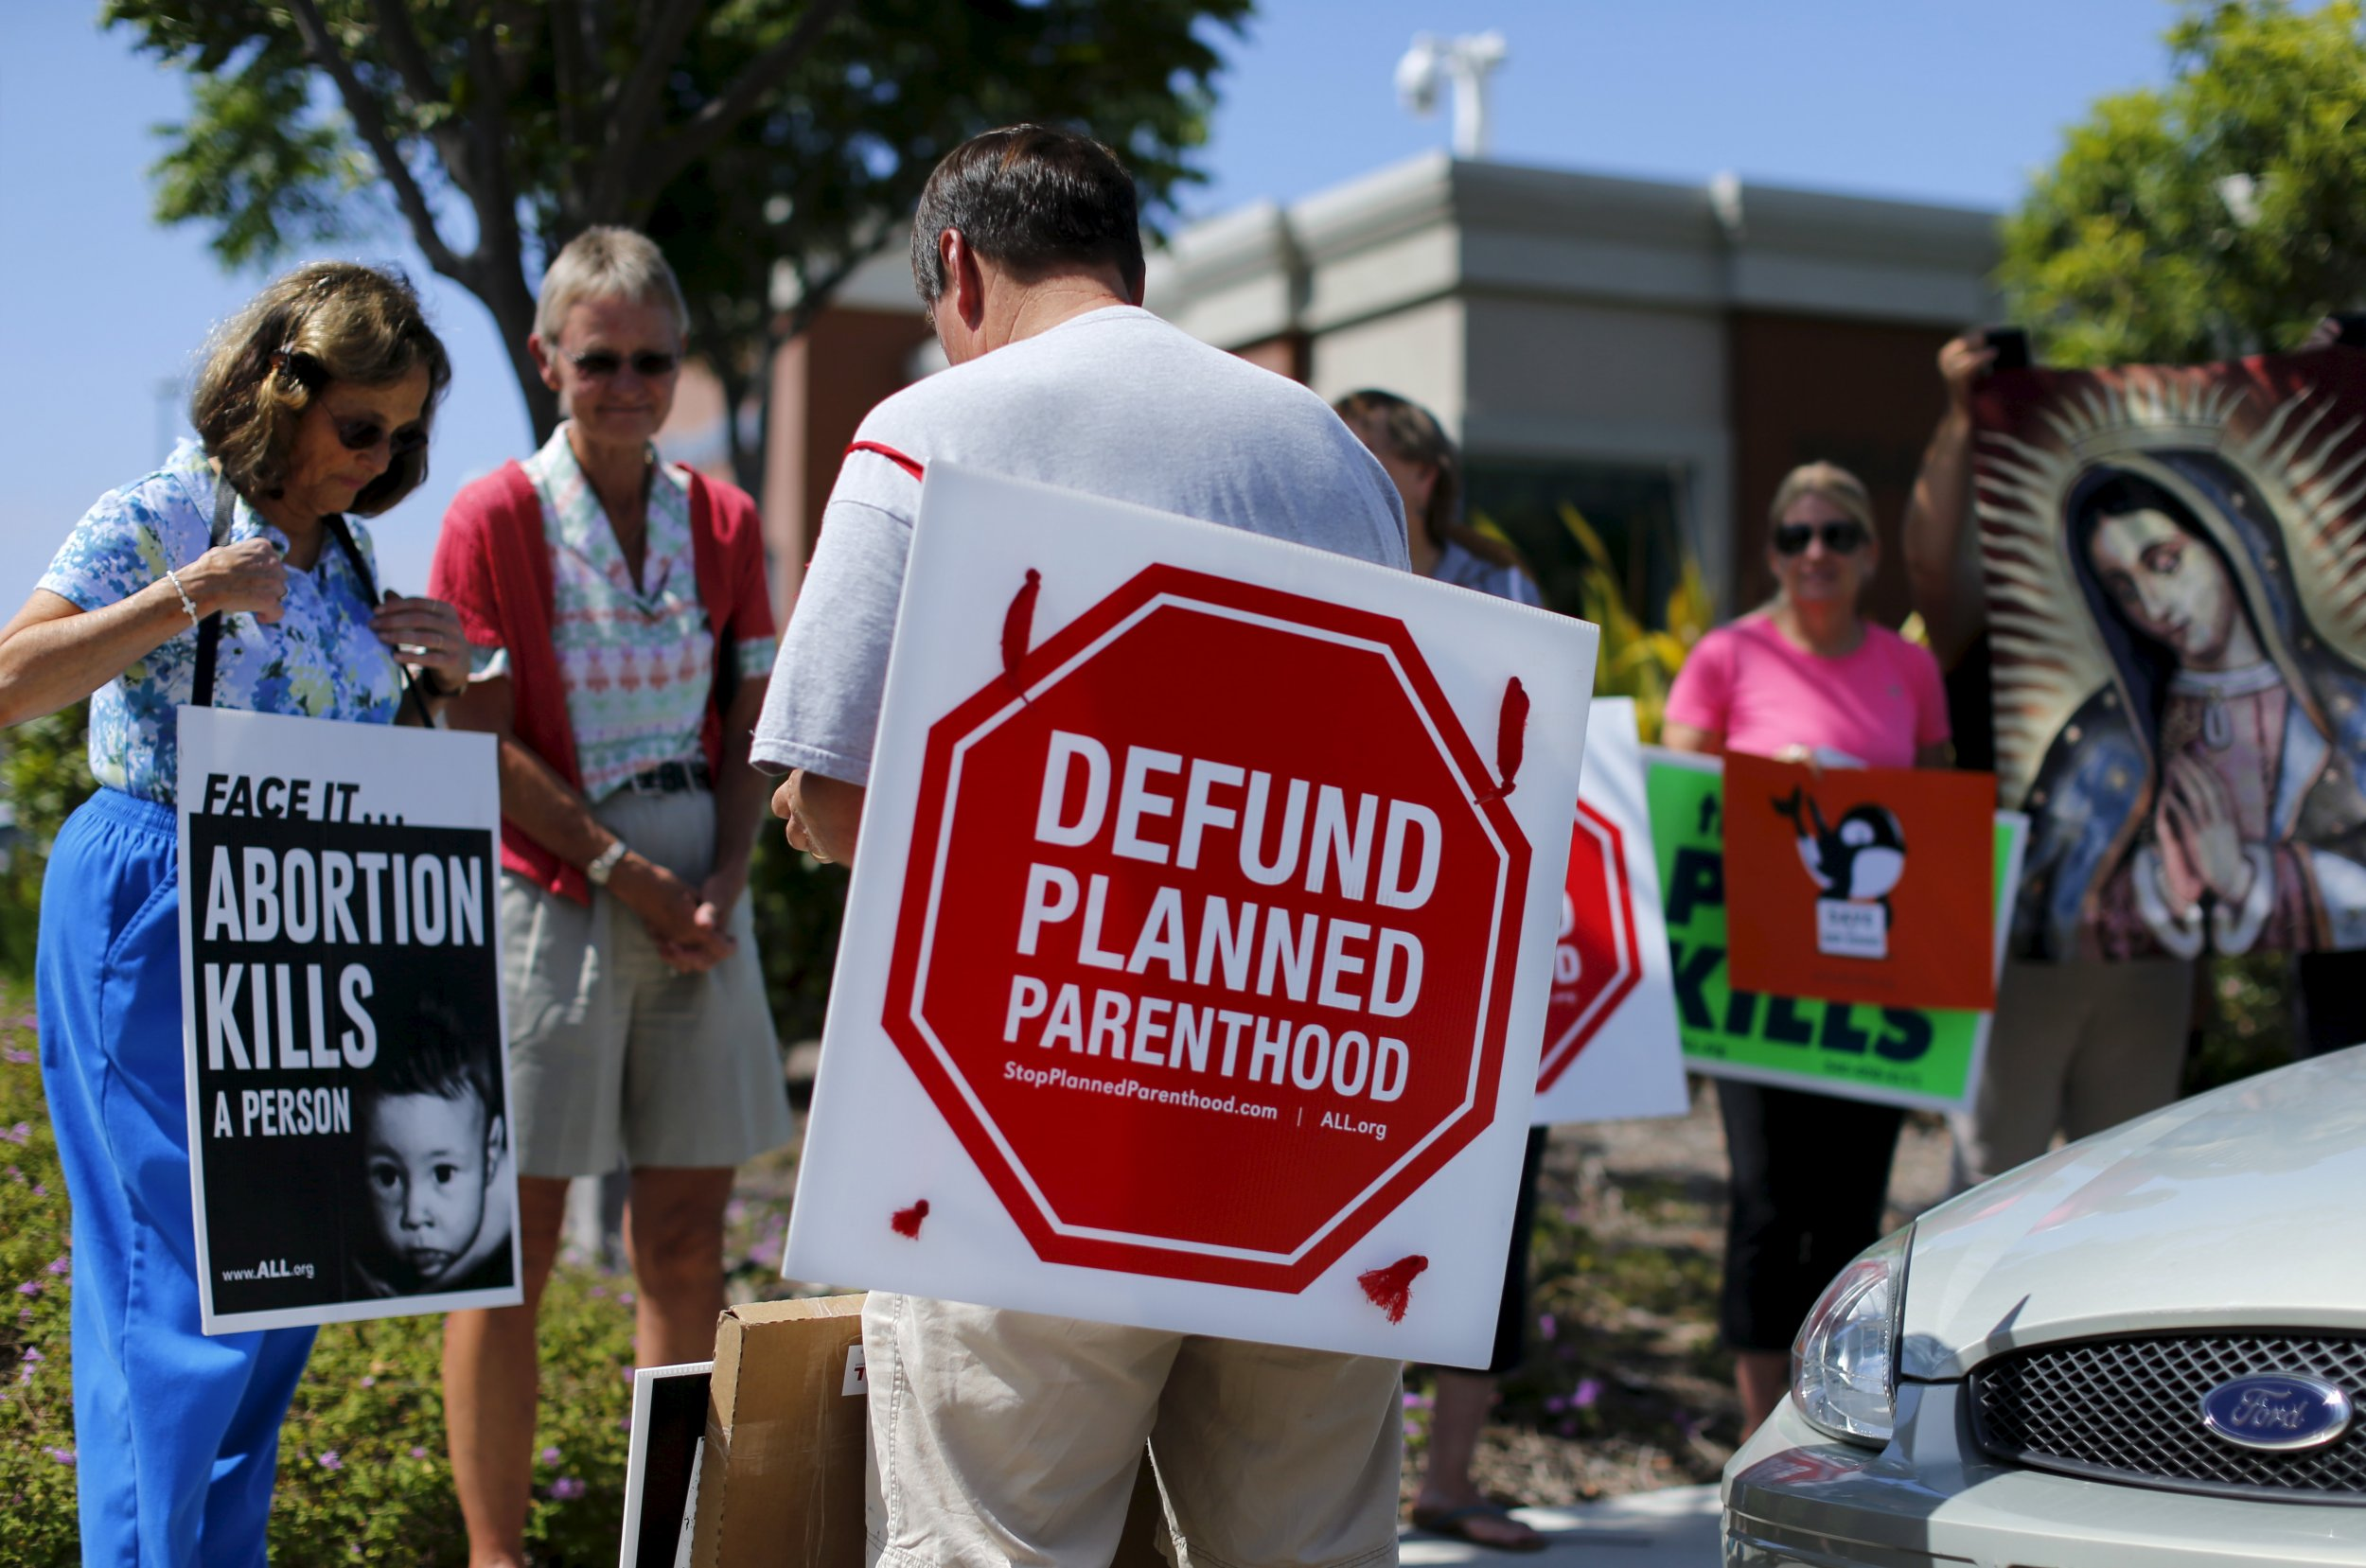 Planned_Parenthood_Idaho